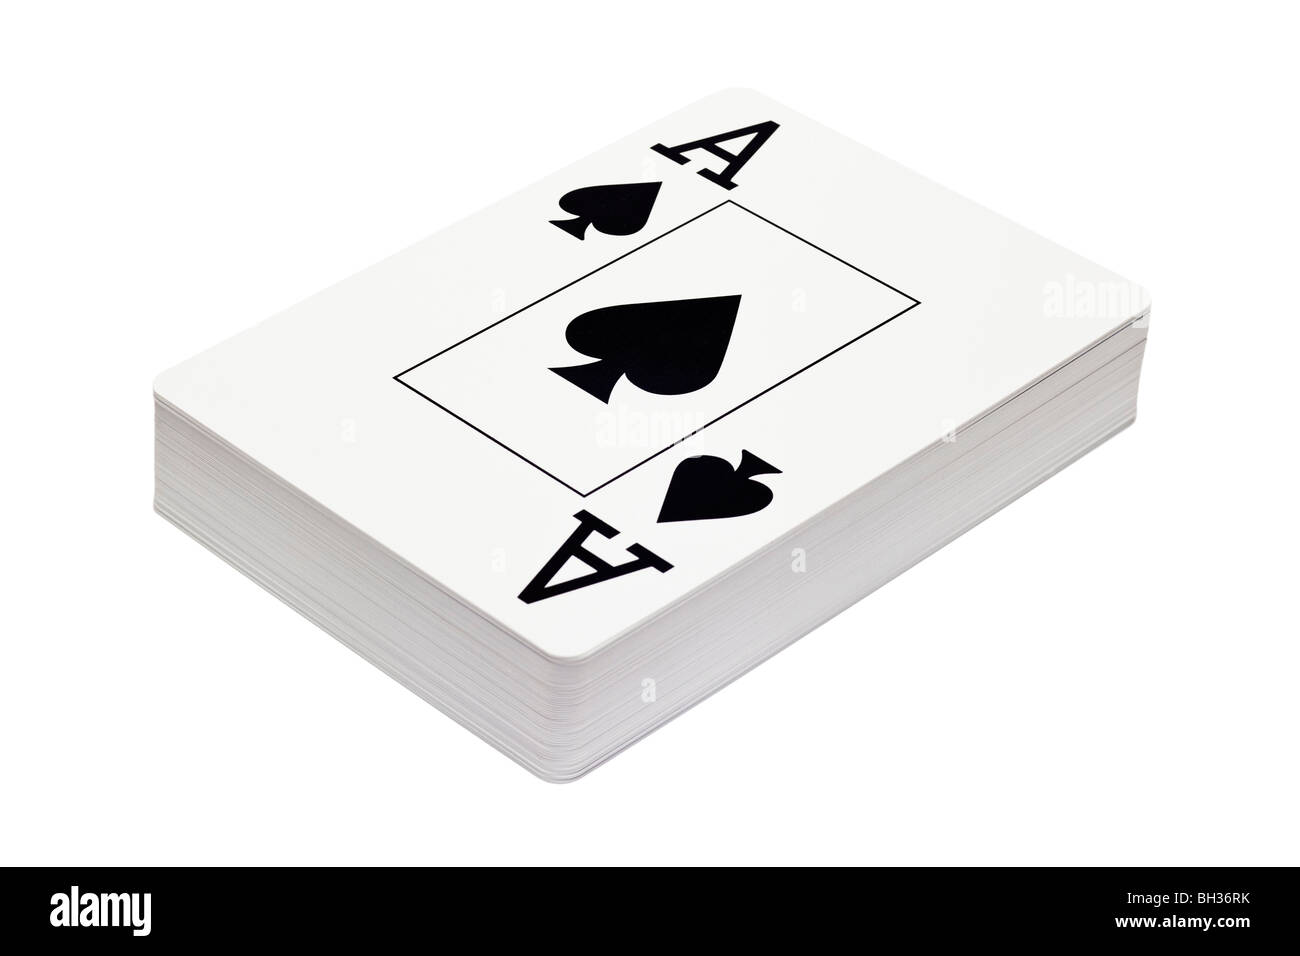 Deck of playing cards face view - ace, aces - Stock Image